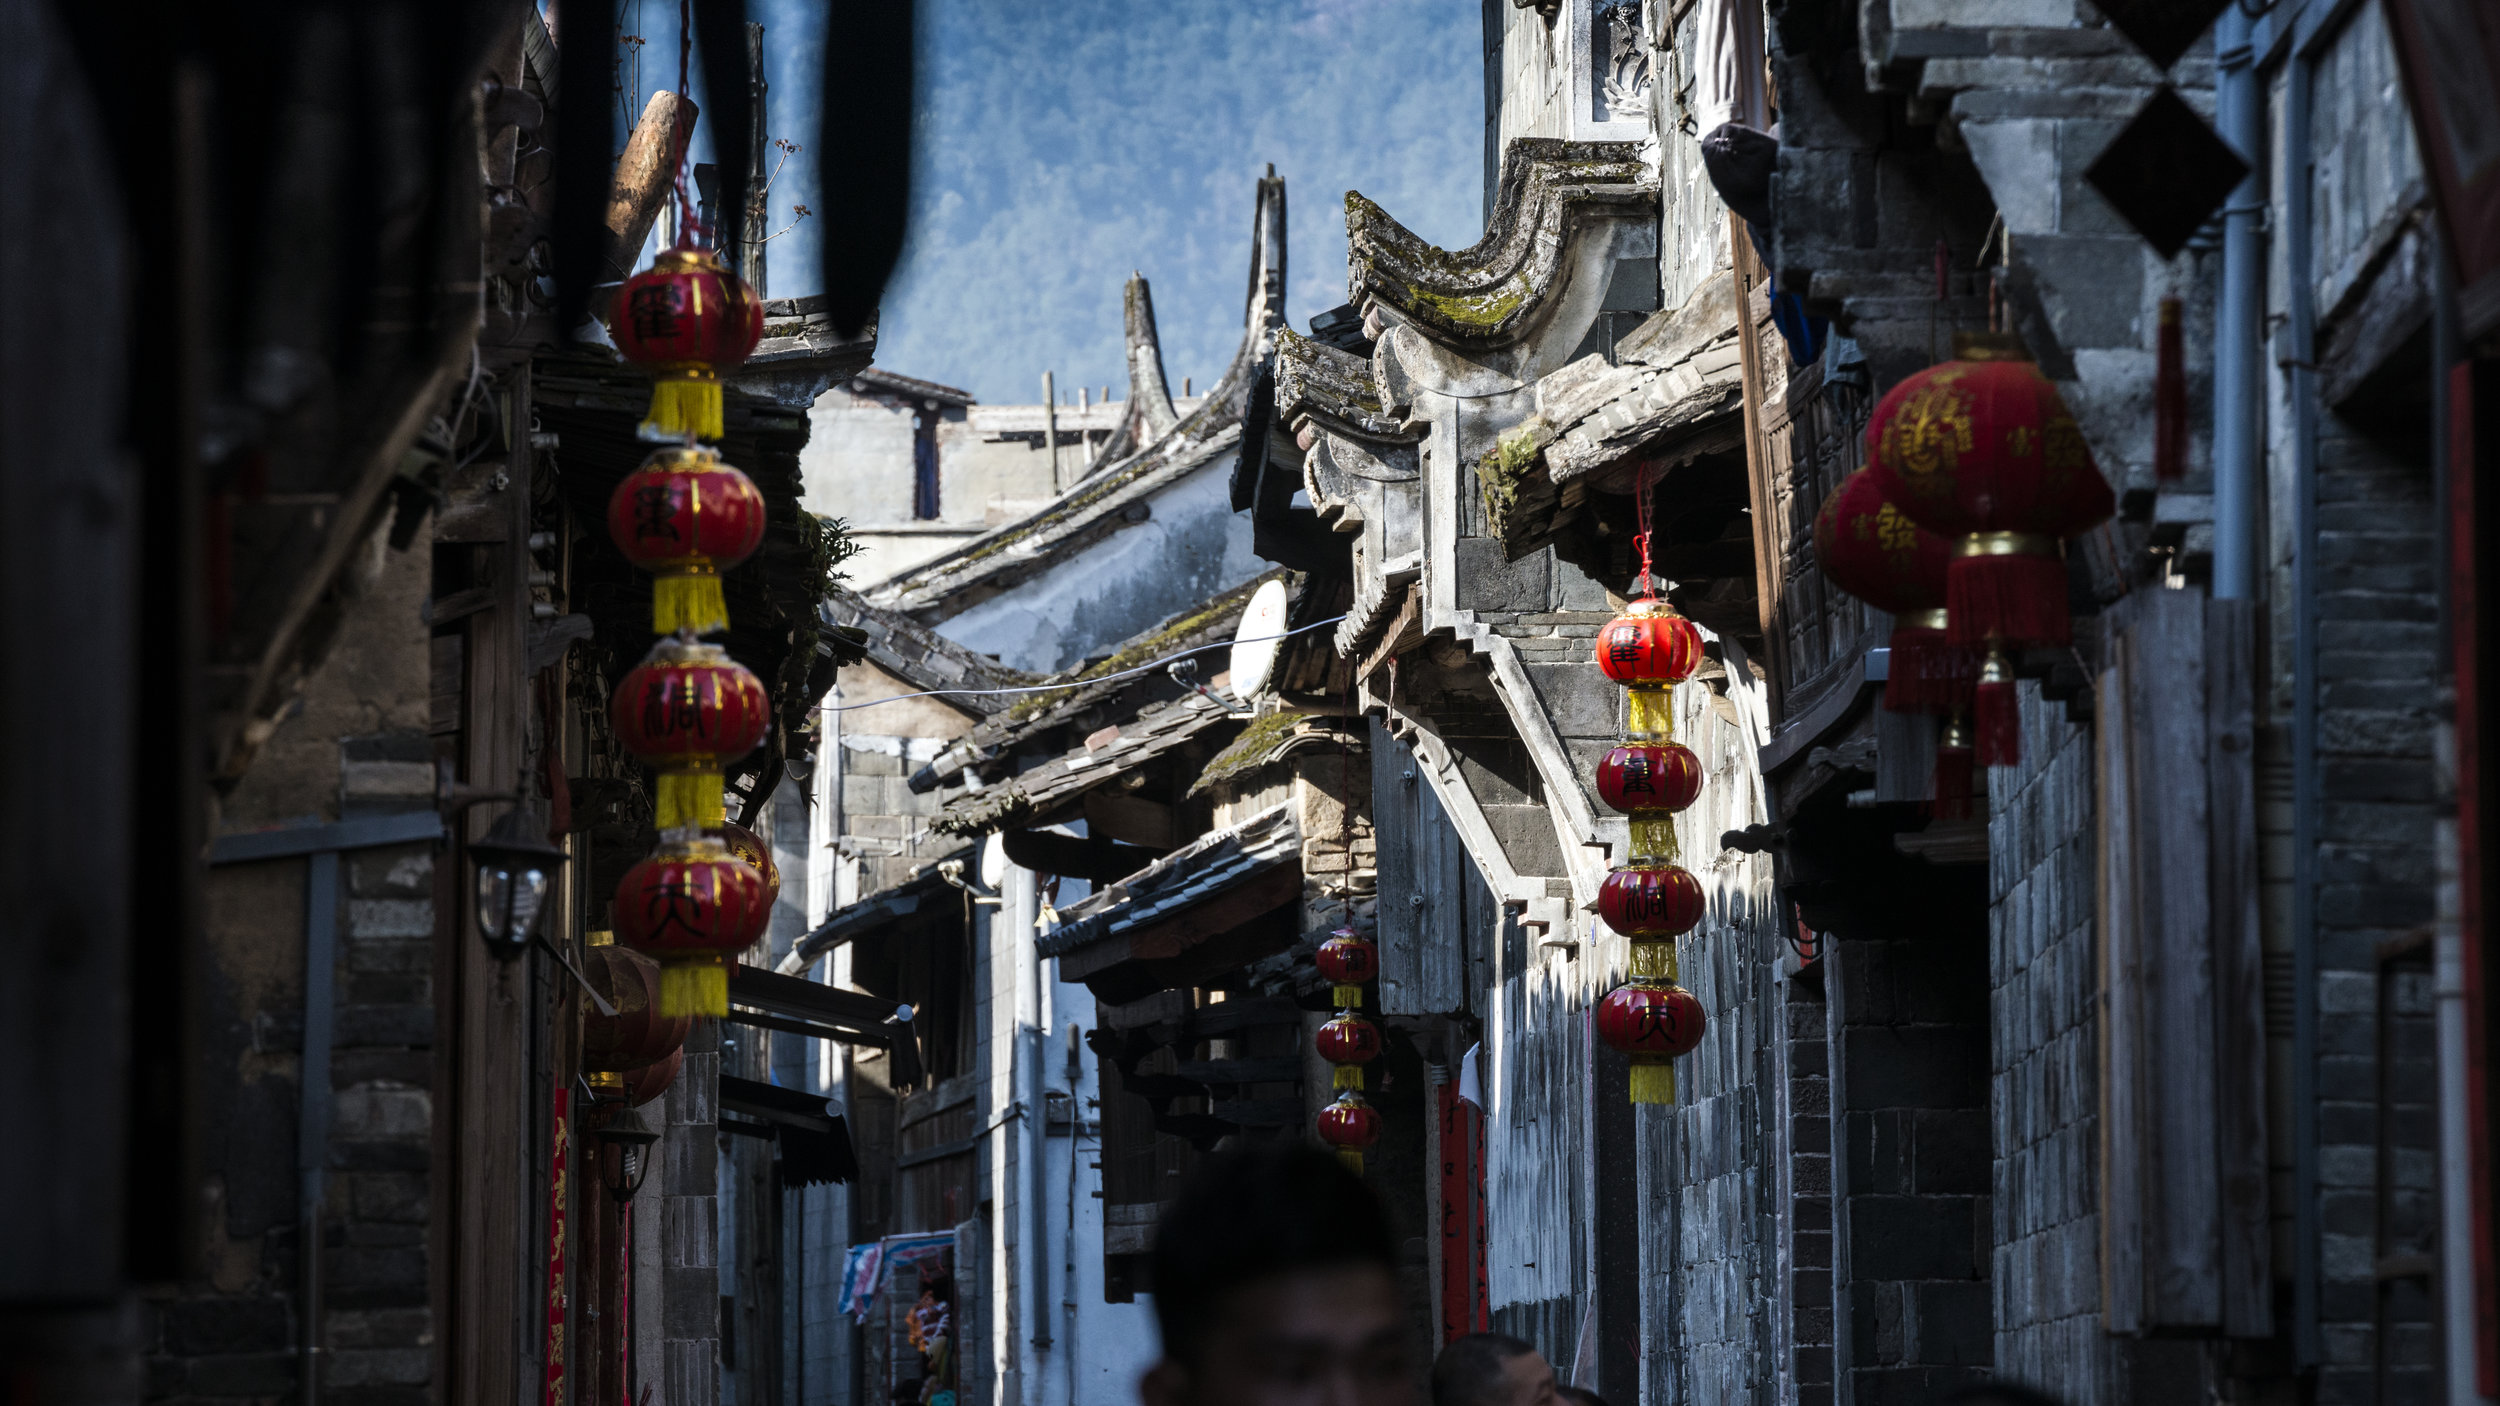 picfair-91603724-an-chinese-ancient-towns-in-fujian (1).jpg